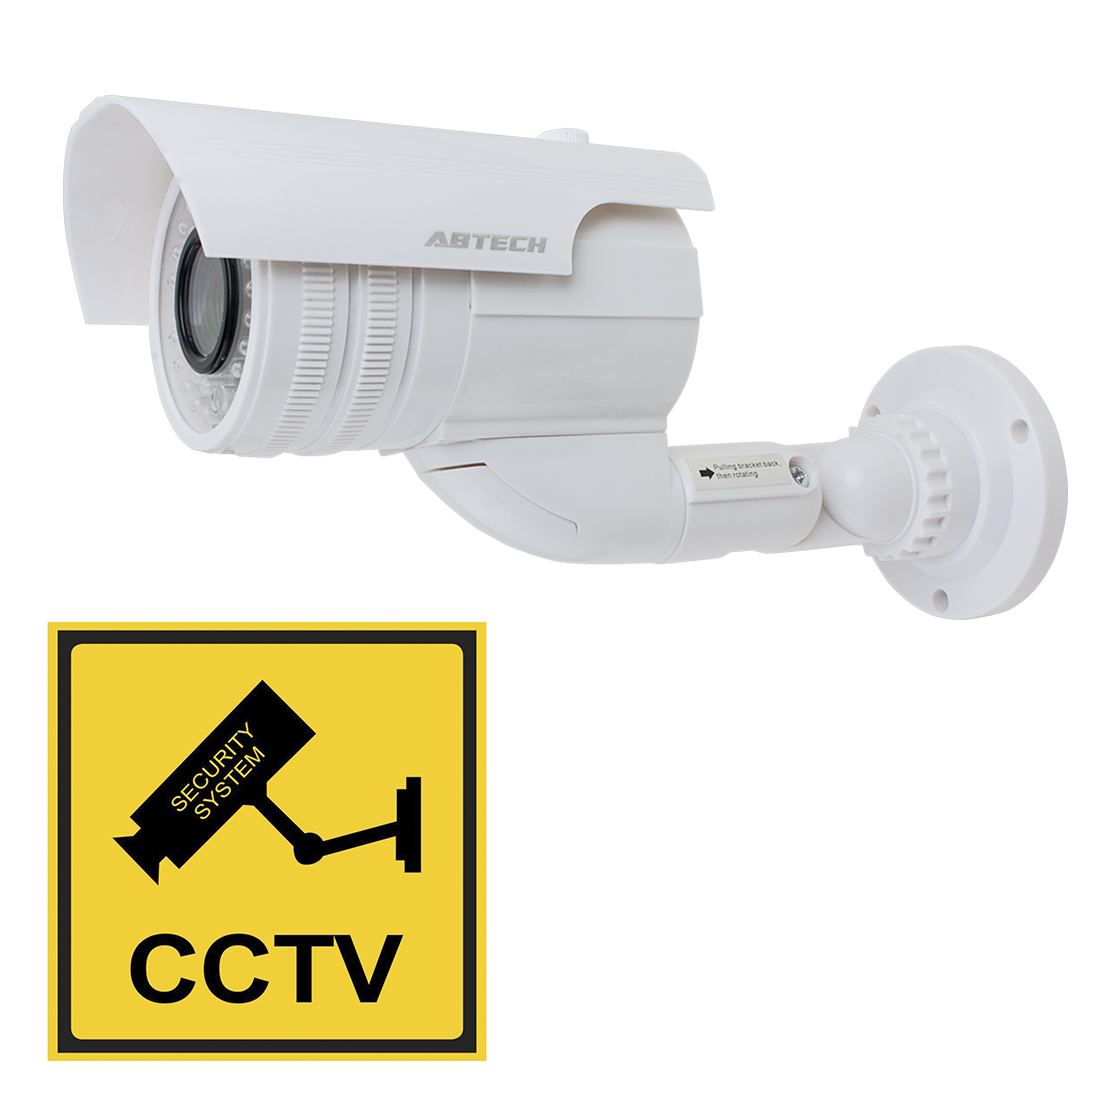 Fake CCTV Dummy Realistic Looking Security Camera Red LED Light Blinking